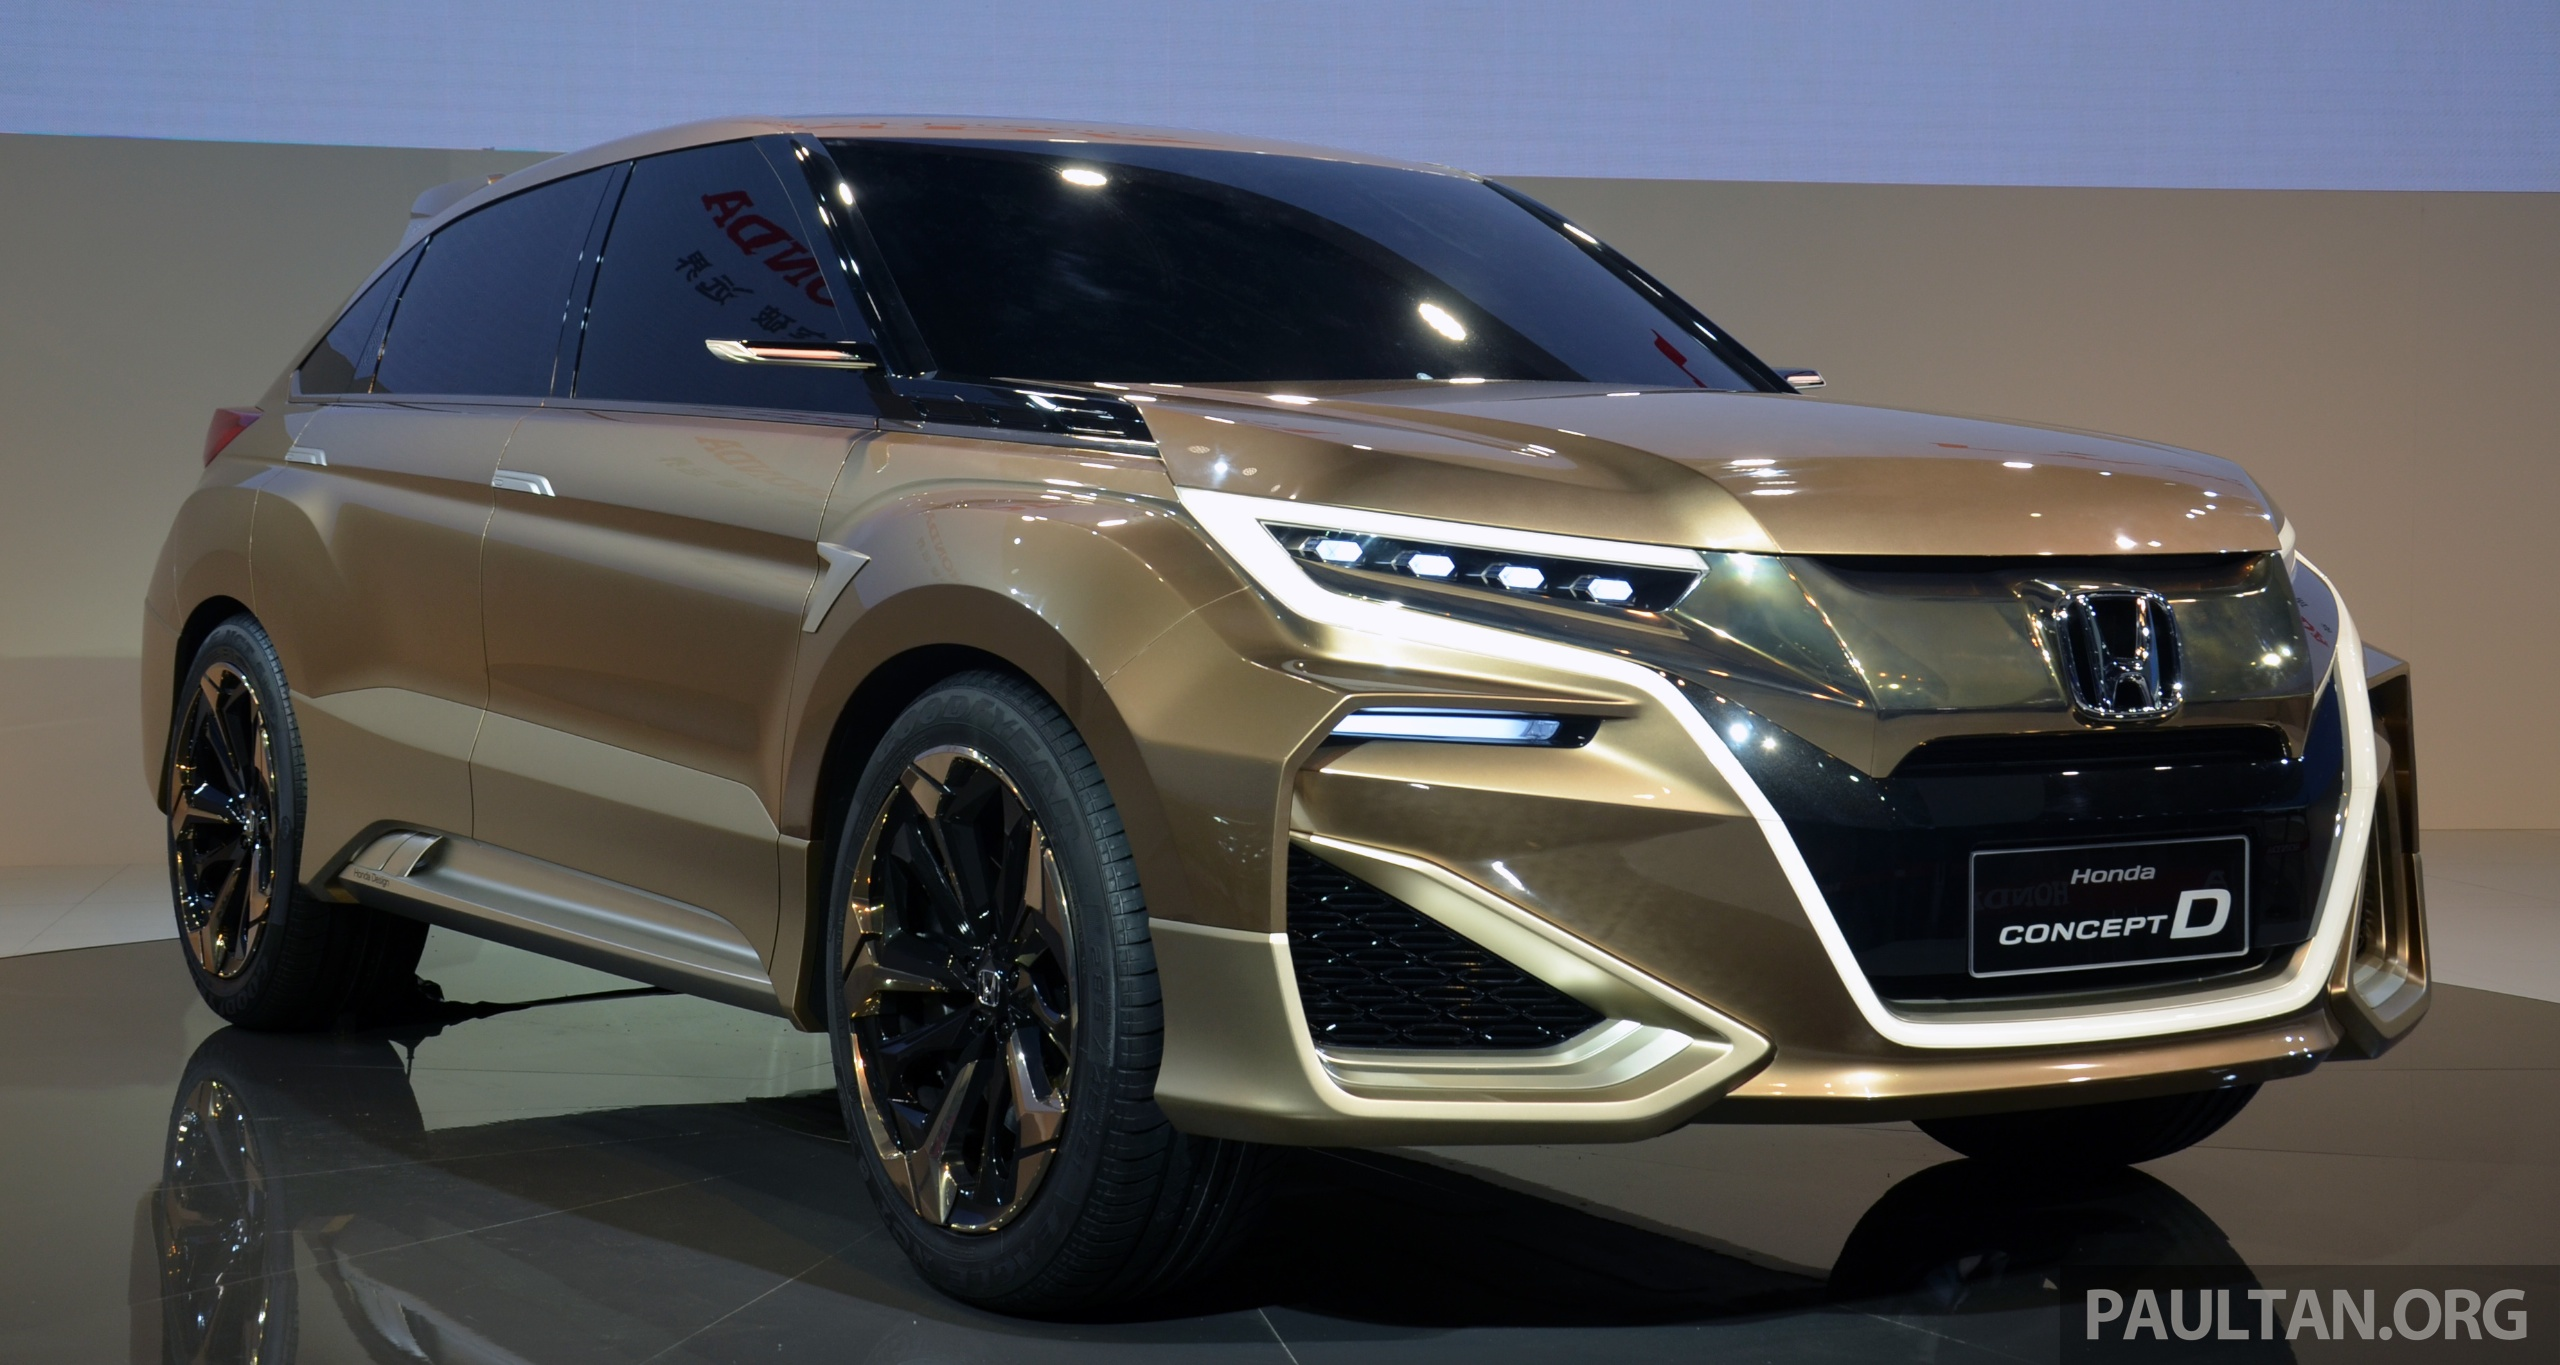 Shanghai 2015 Honda Concept D Previews New Suv